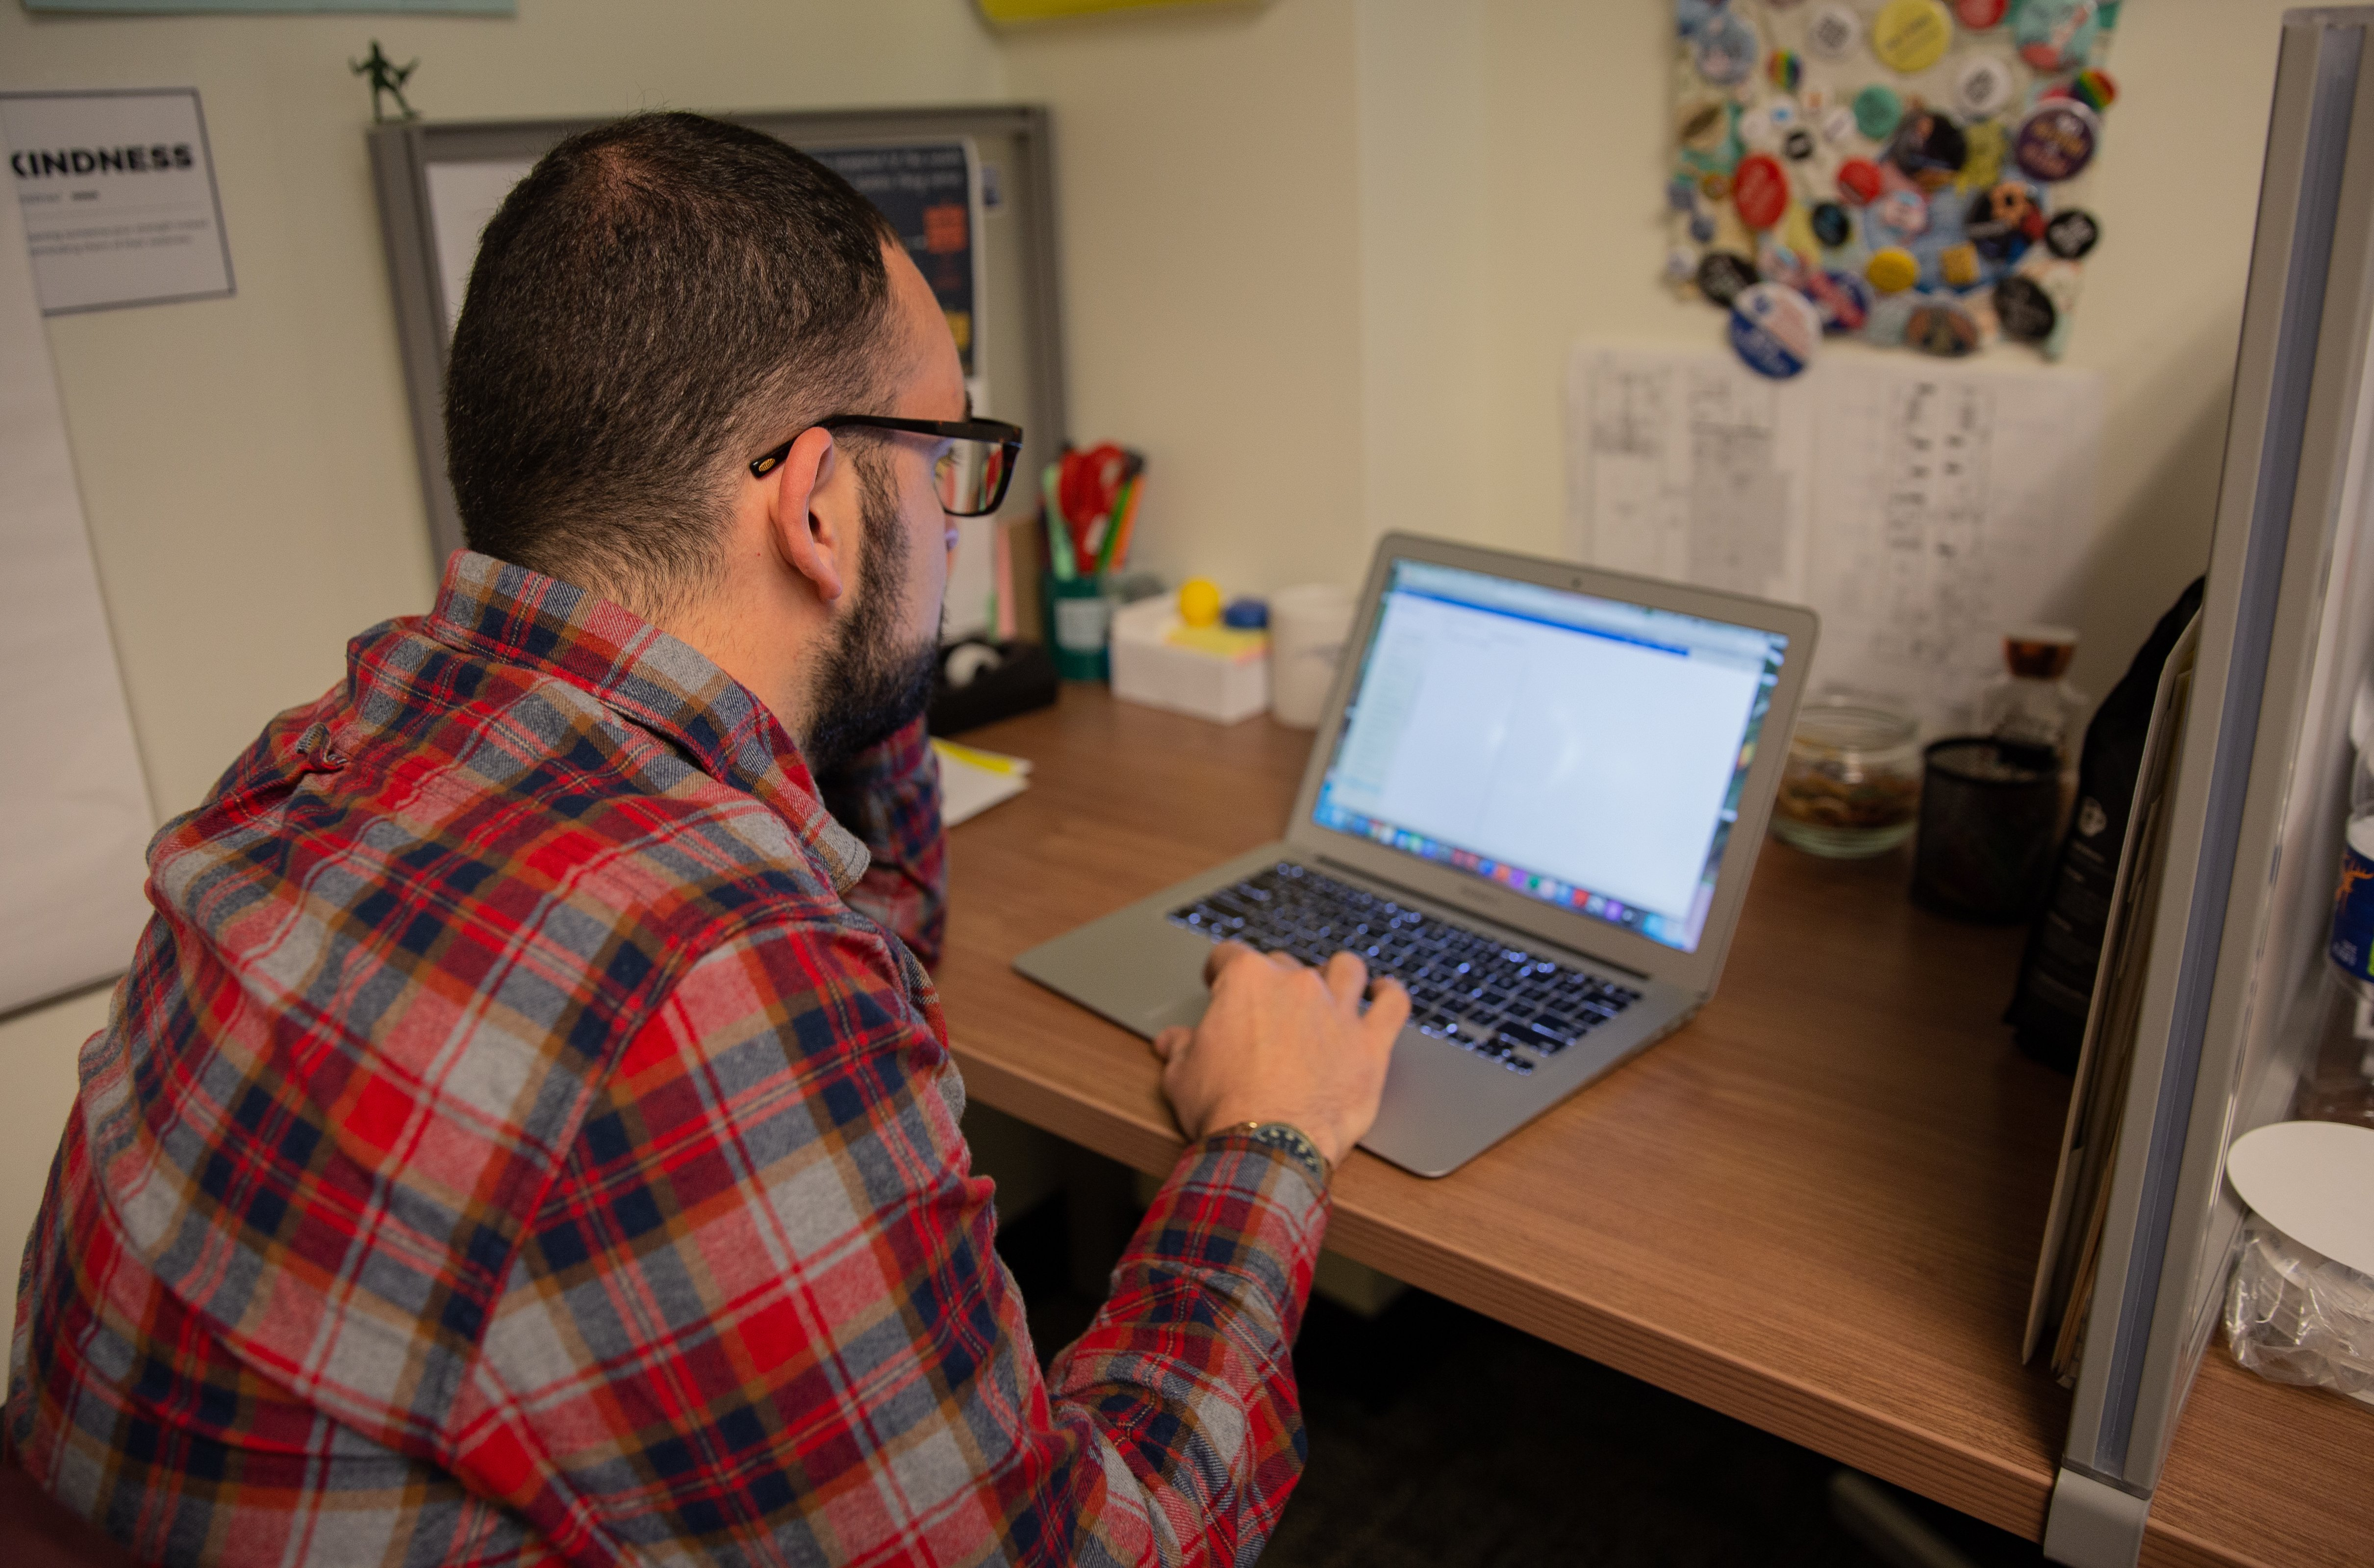 Rowan PhD student Donn Garby working at his cubicle in Hawthorne Hall.